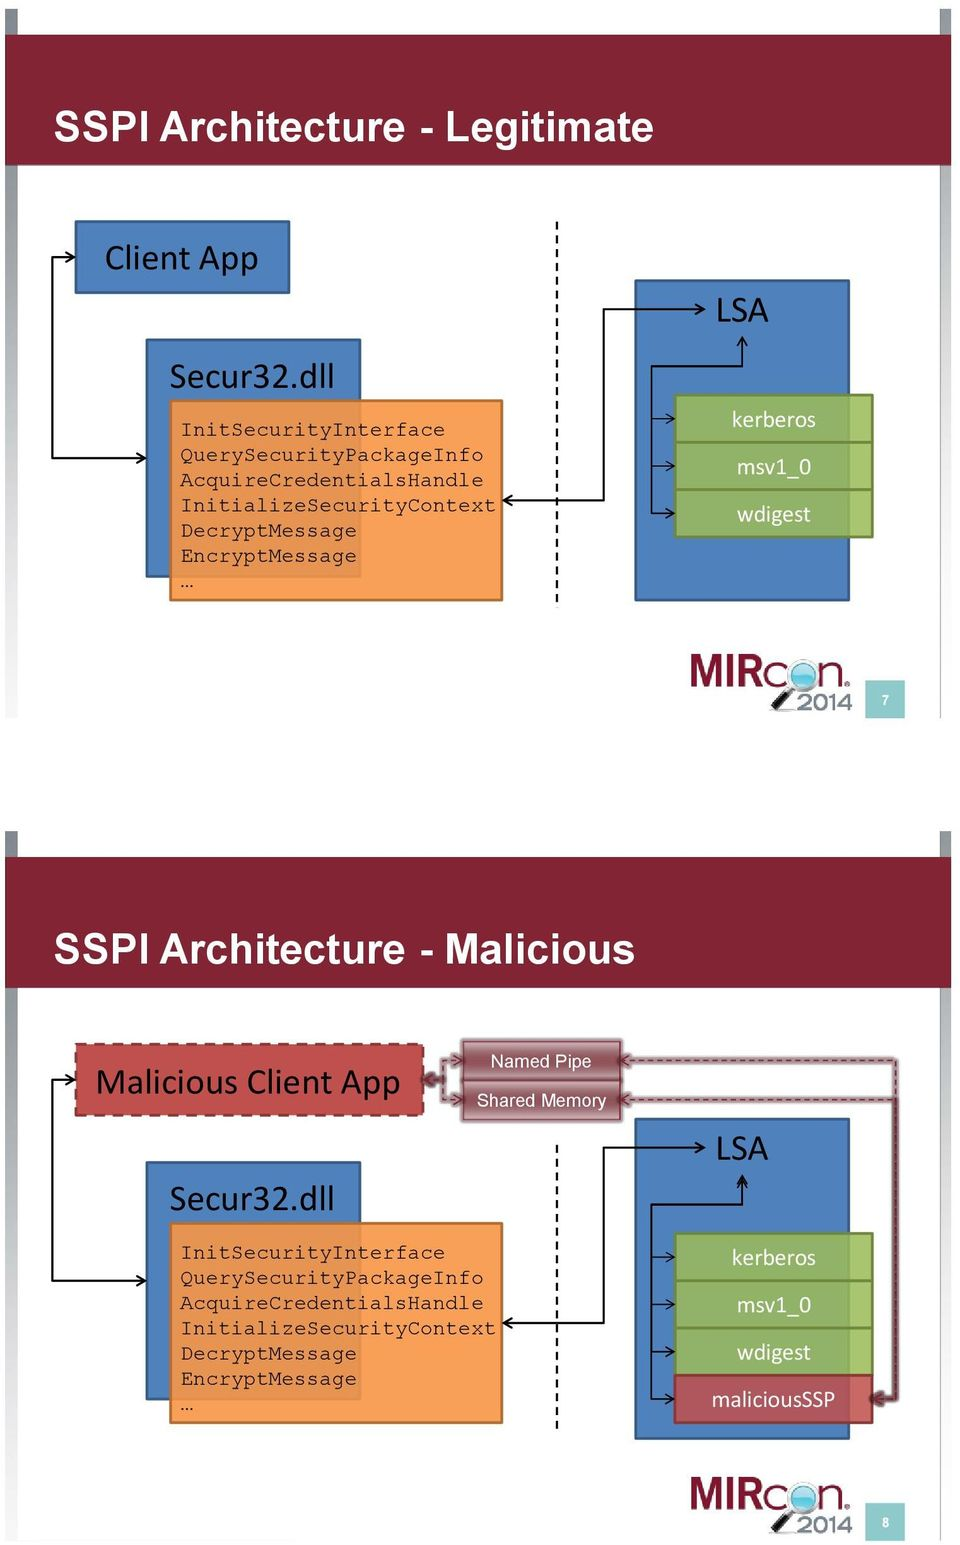 EncryptMessage LSA kerberos msv1_0 wdigest 7 SSPI Architecture - Malicious Malicious Client App Secur32.